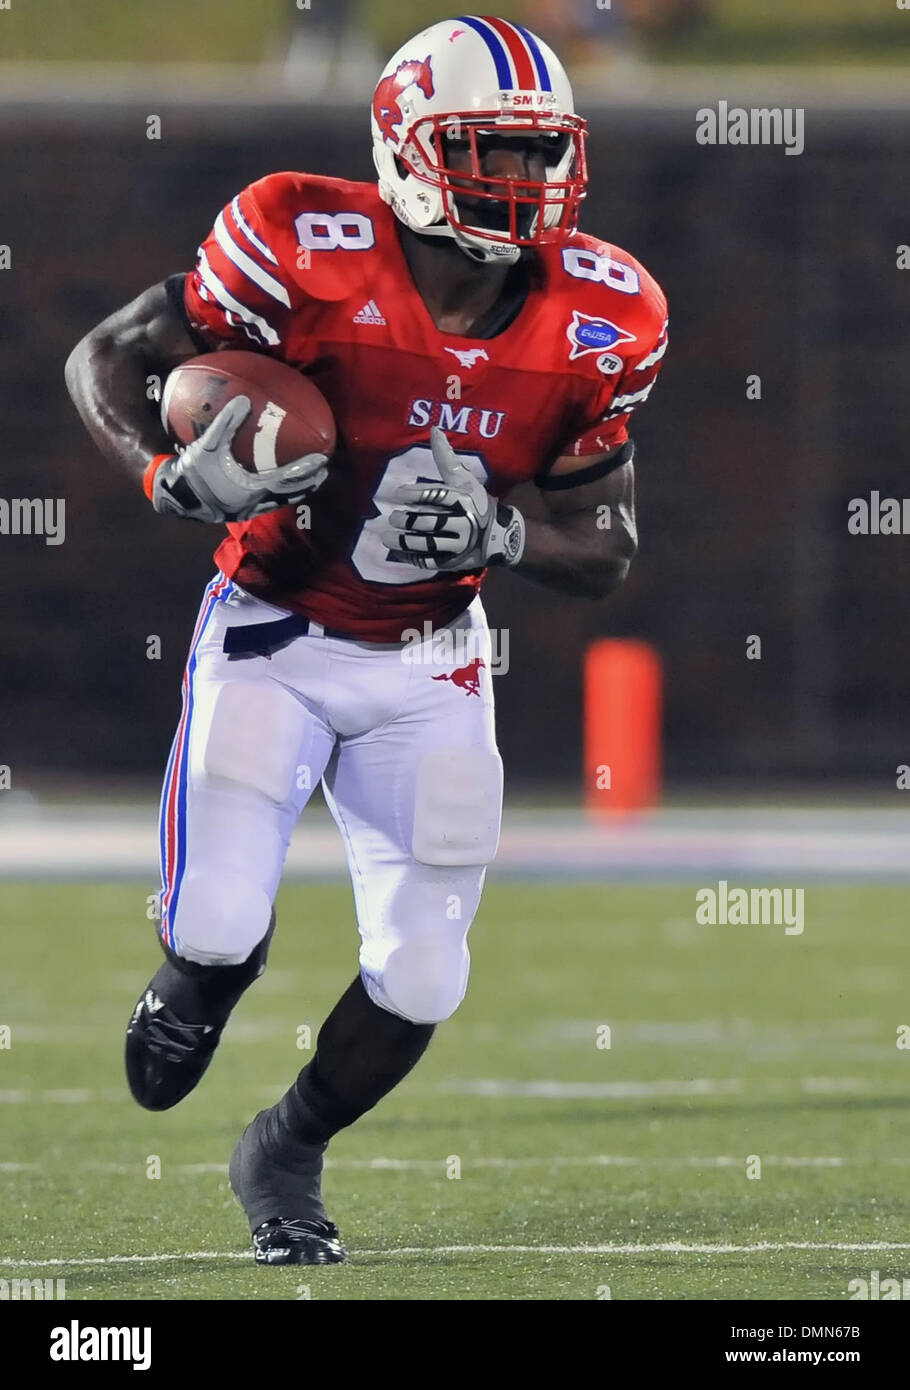 05 SEP 2009:  Stephen F Austin travels to Dallas to face the SMU Ponies in the season kickoff.  With a 4th quarter come back the Ponies win 31-23 over SFA.  SMU RB Shawnbrey McNeal debuts with 158 yard game performance. (Credit Image: © Southcreek Global/ZUMApress.com) - Stock Image